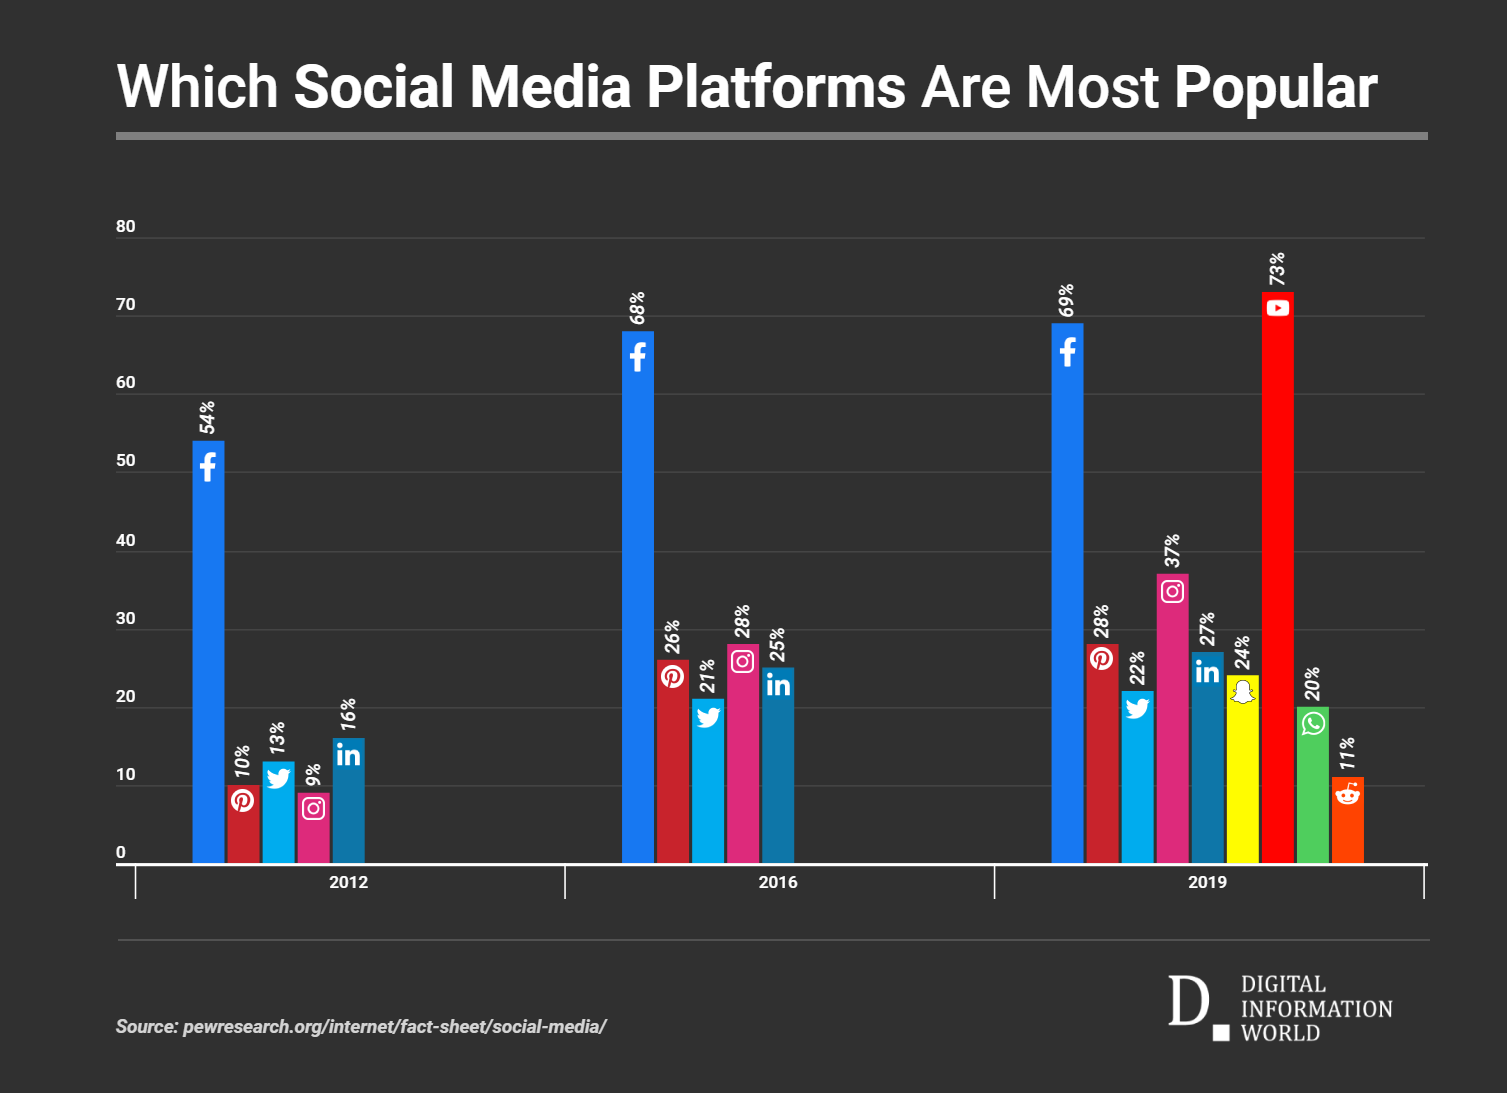 Despite The Criticism and Competition, Users Love Spending Time on YouTube and Facebook The Most [Chart]